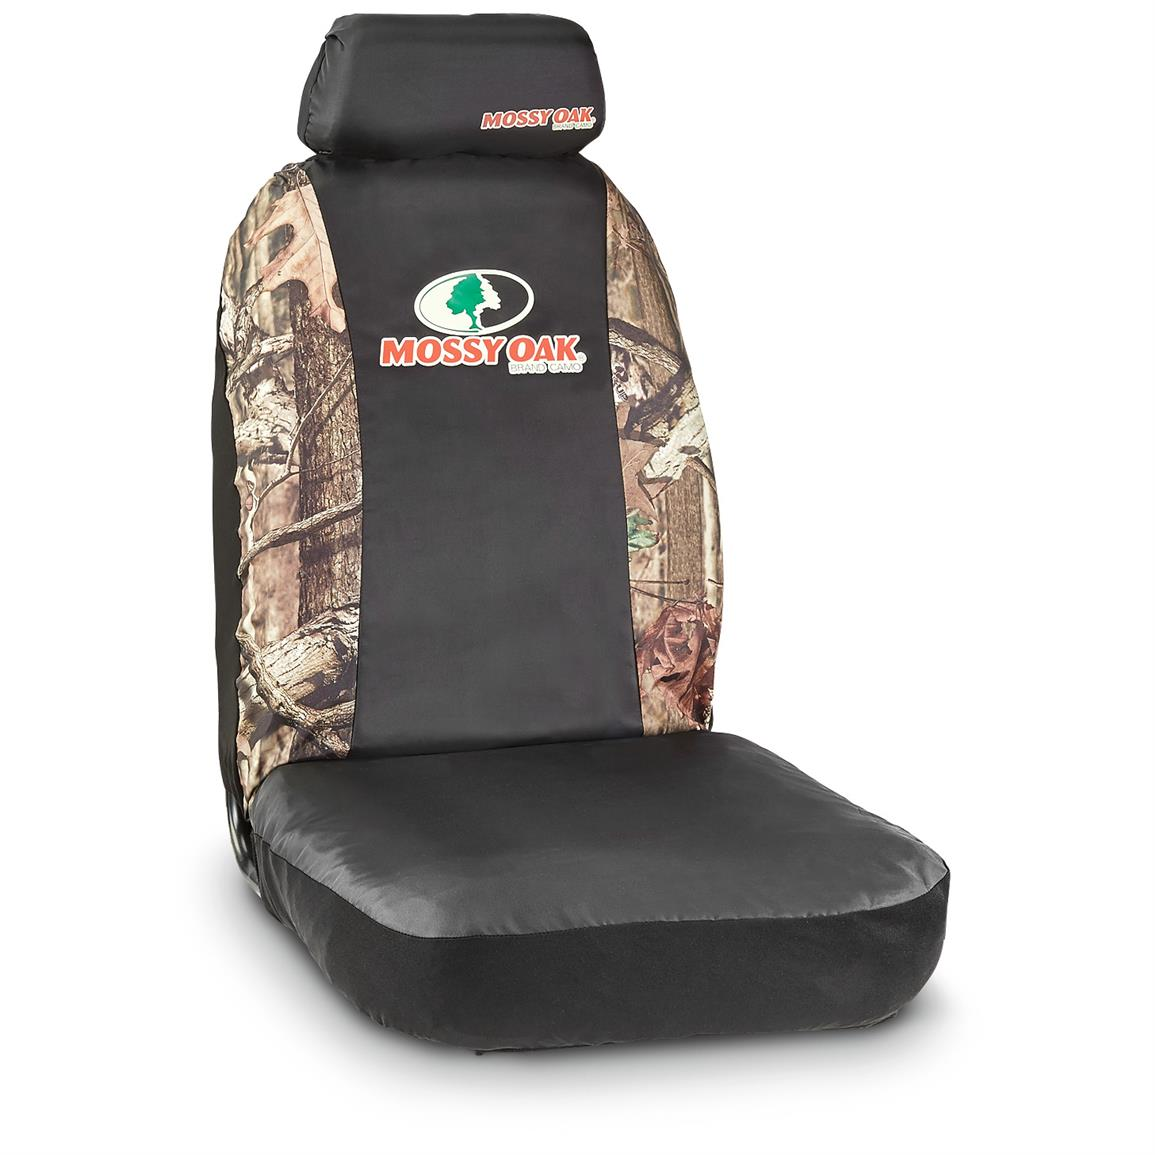 Camo Seat Cover Kit, Bucket Seat, Mossy Oak Break-Up Infinity